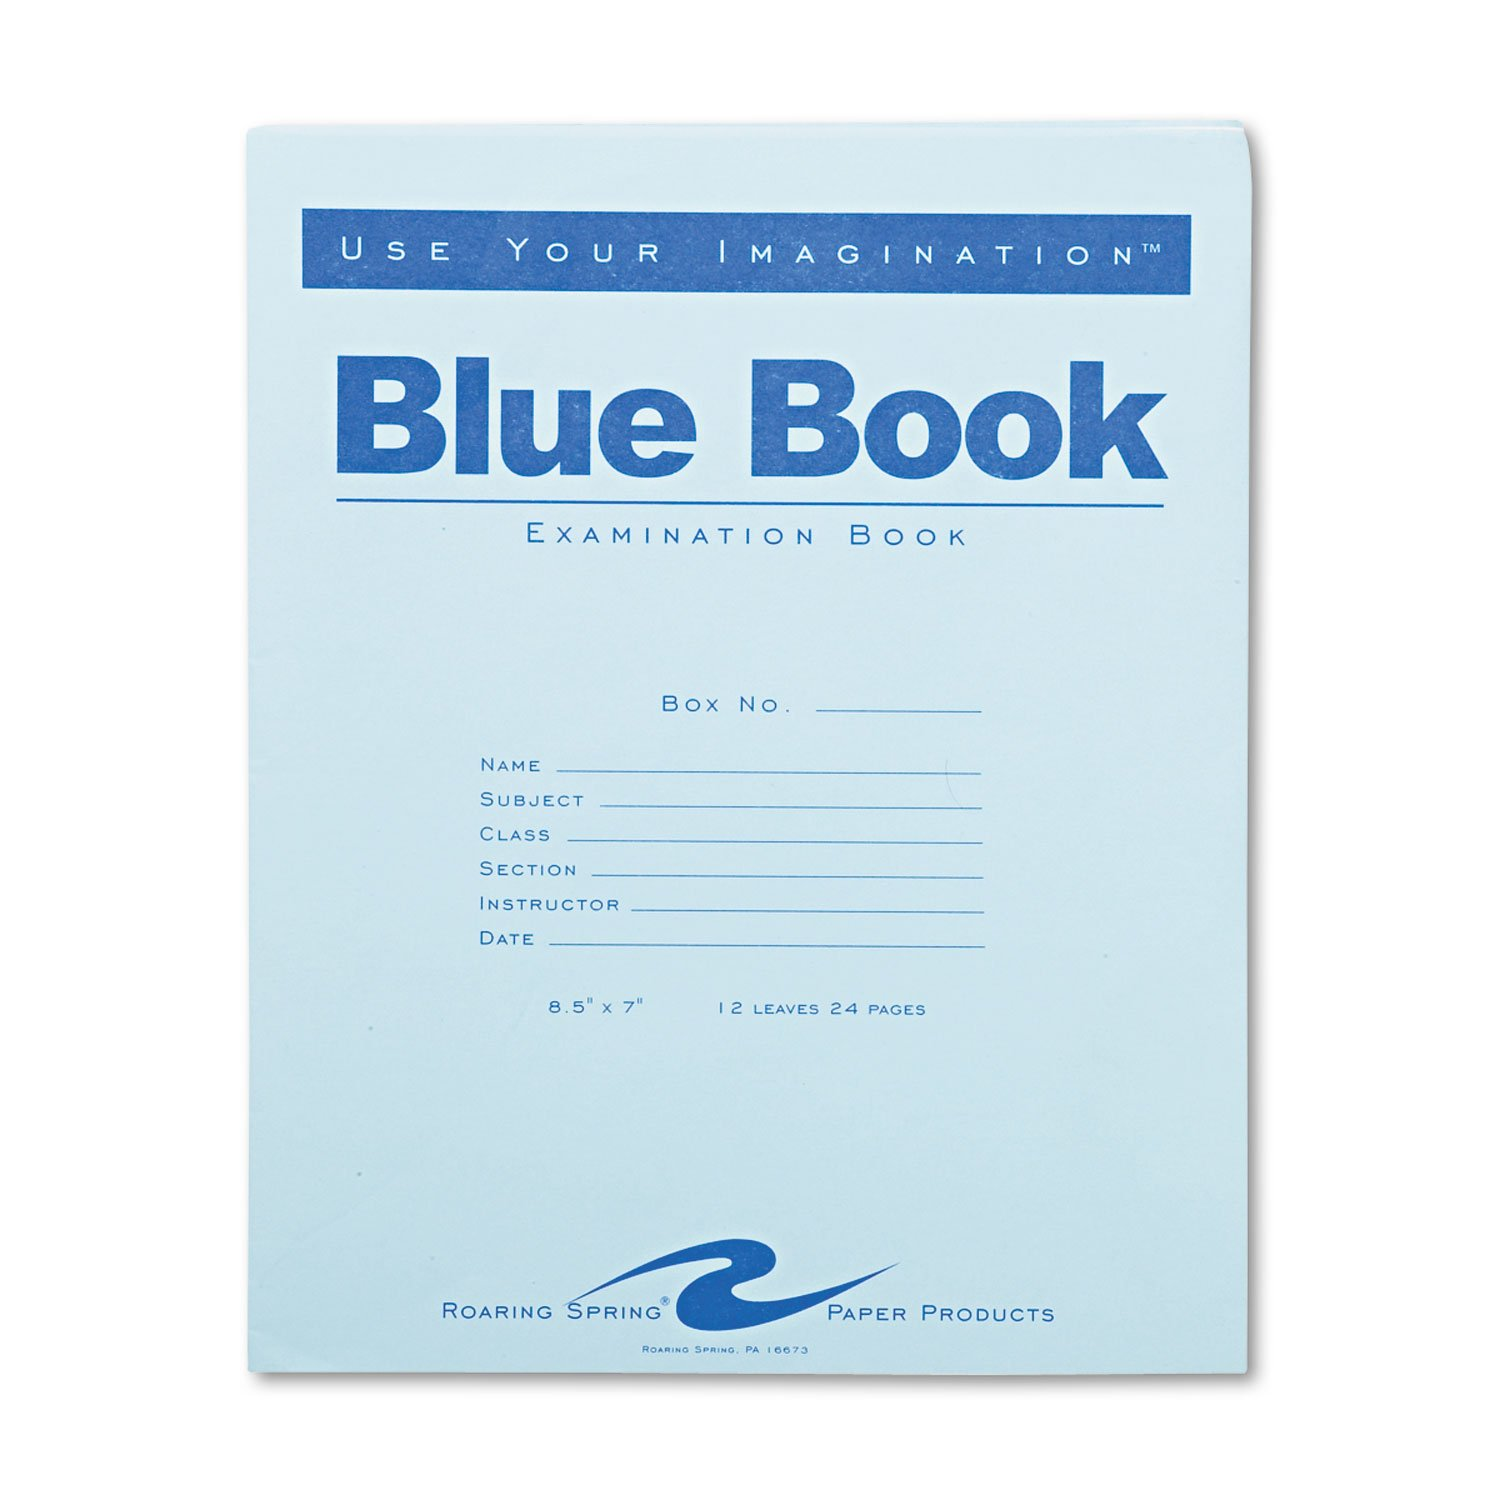 com roaring spring exam blue book margin rule x  com roaring spring exam blue book margin rule 8 1 2 x 7 inches white 12 sht 24 page 77513 exam notebooks kitchen dining